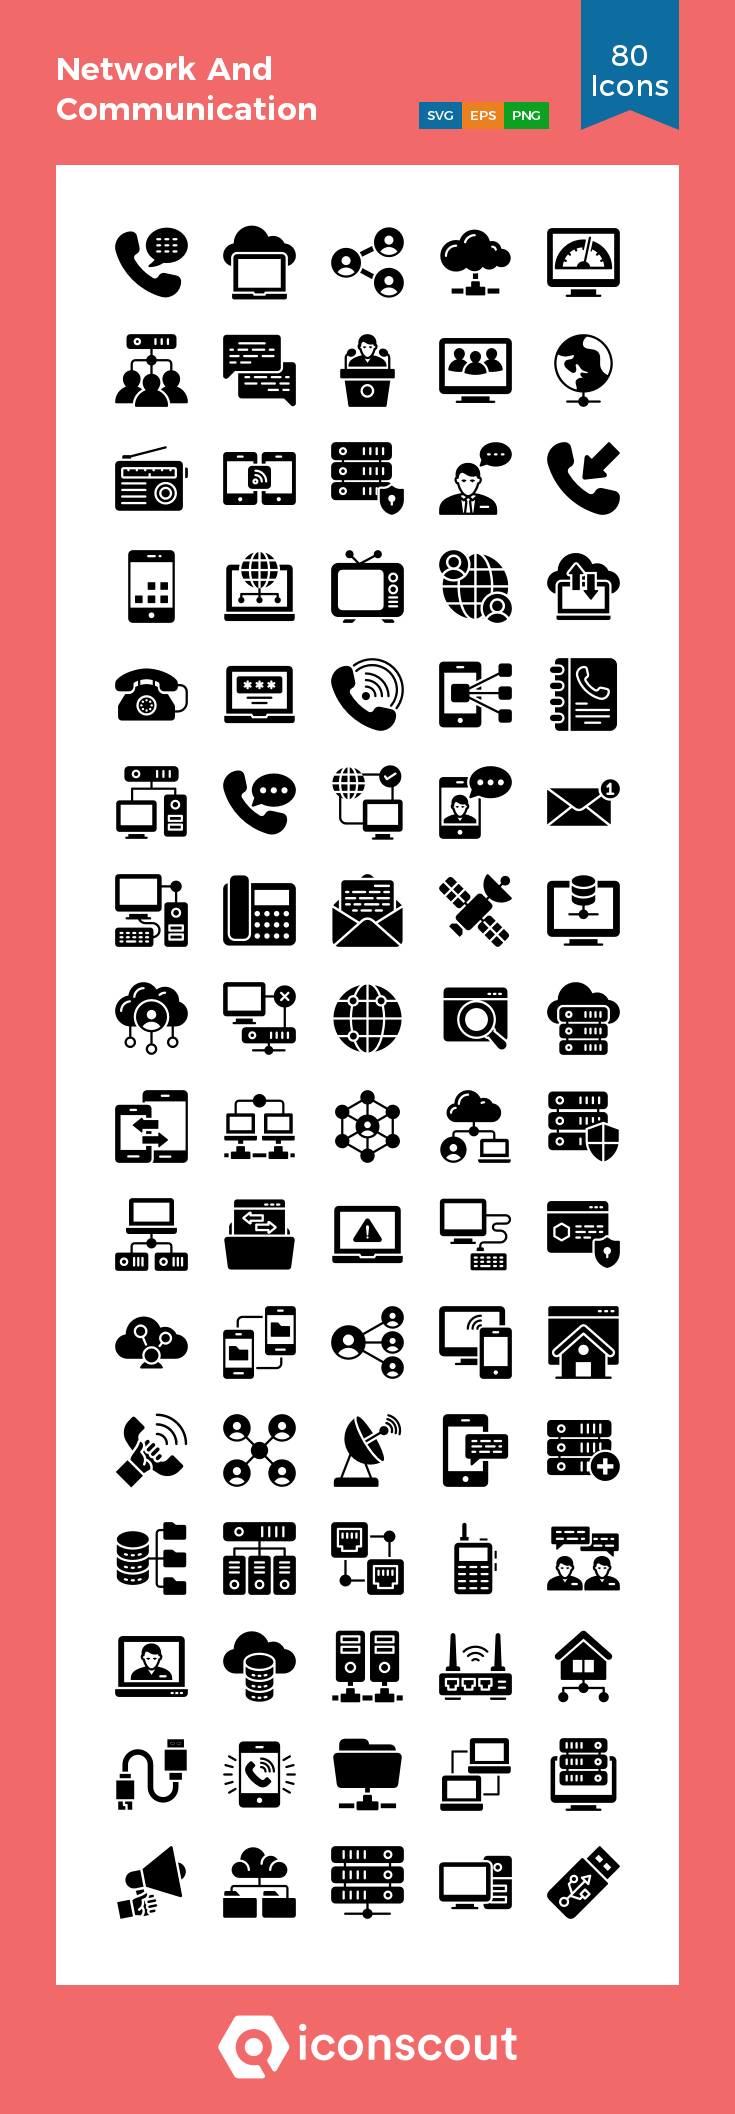 Download Network And Communication Icon Pack Available In Svg Png Eps Ai Icon Fonts Science Icons Network Icon Communication Icon